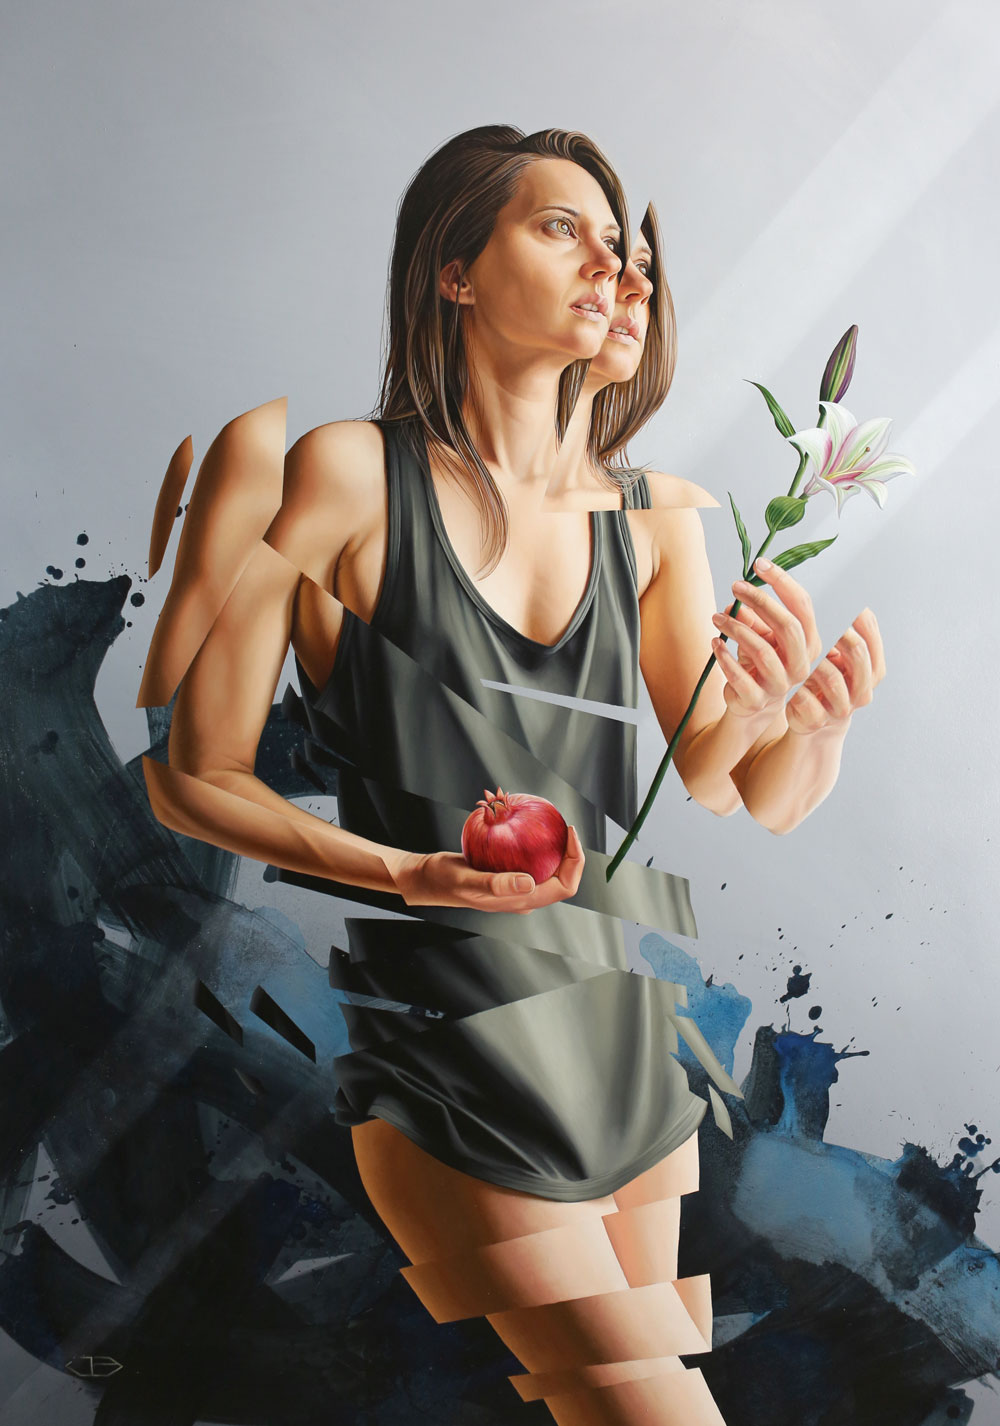 James Bullough |Realistic murals paintings